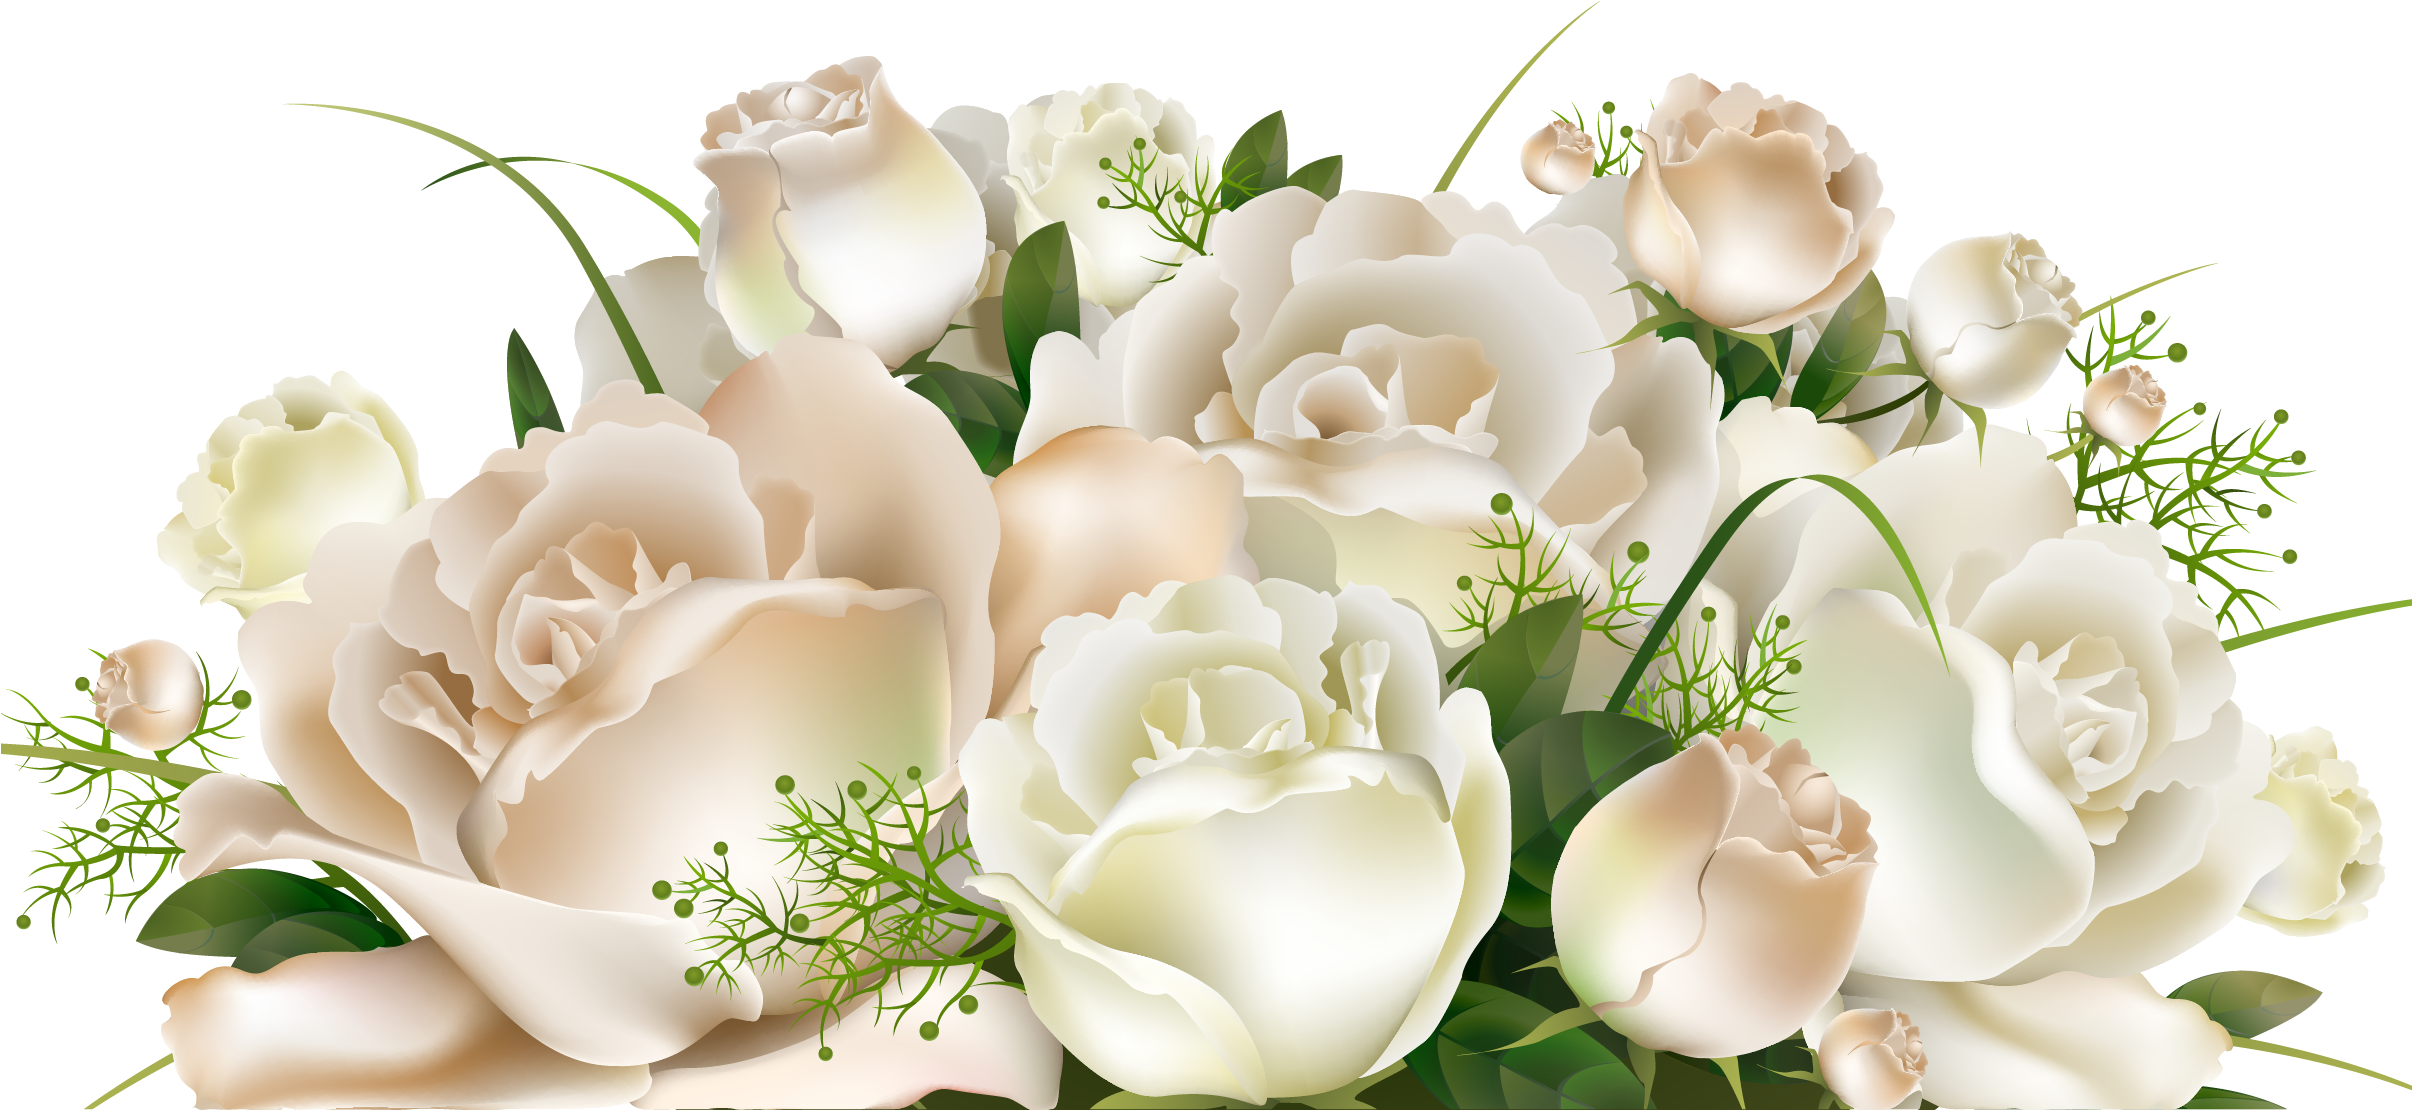 White Rose Bunch - Transparent Background White Roses Png - Free Transparent PNG Download - PNGkey